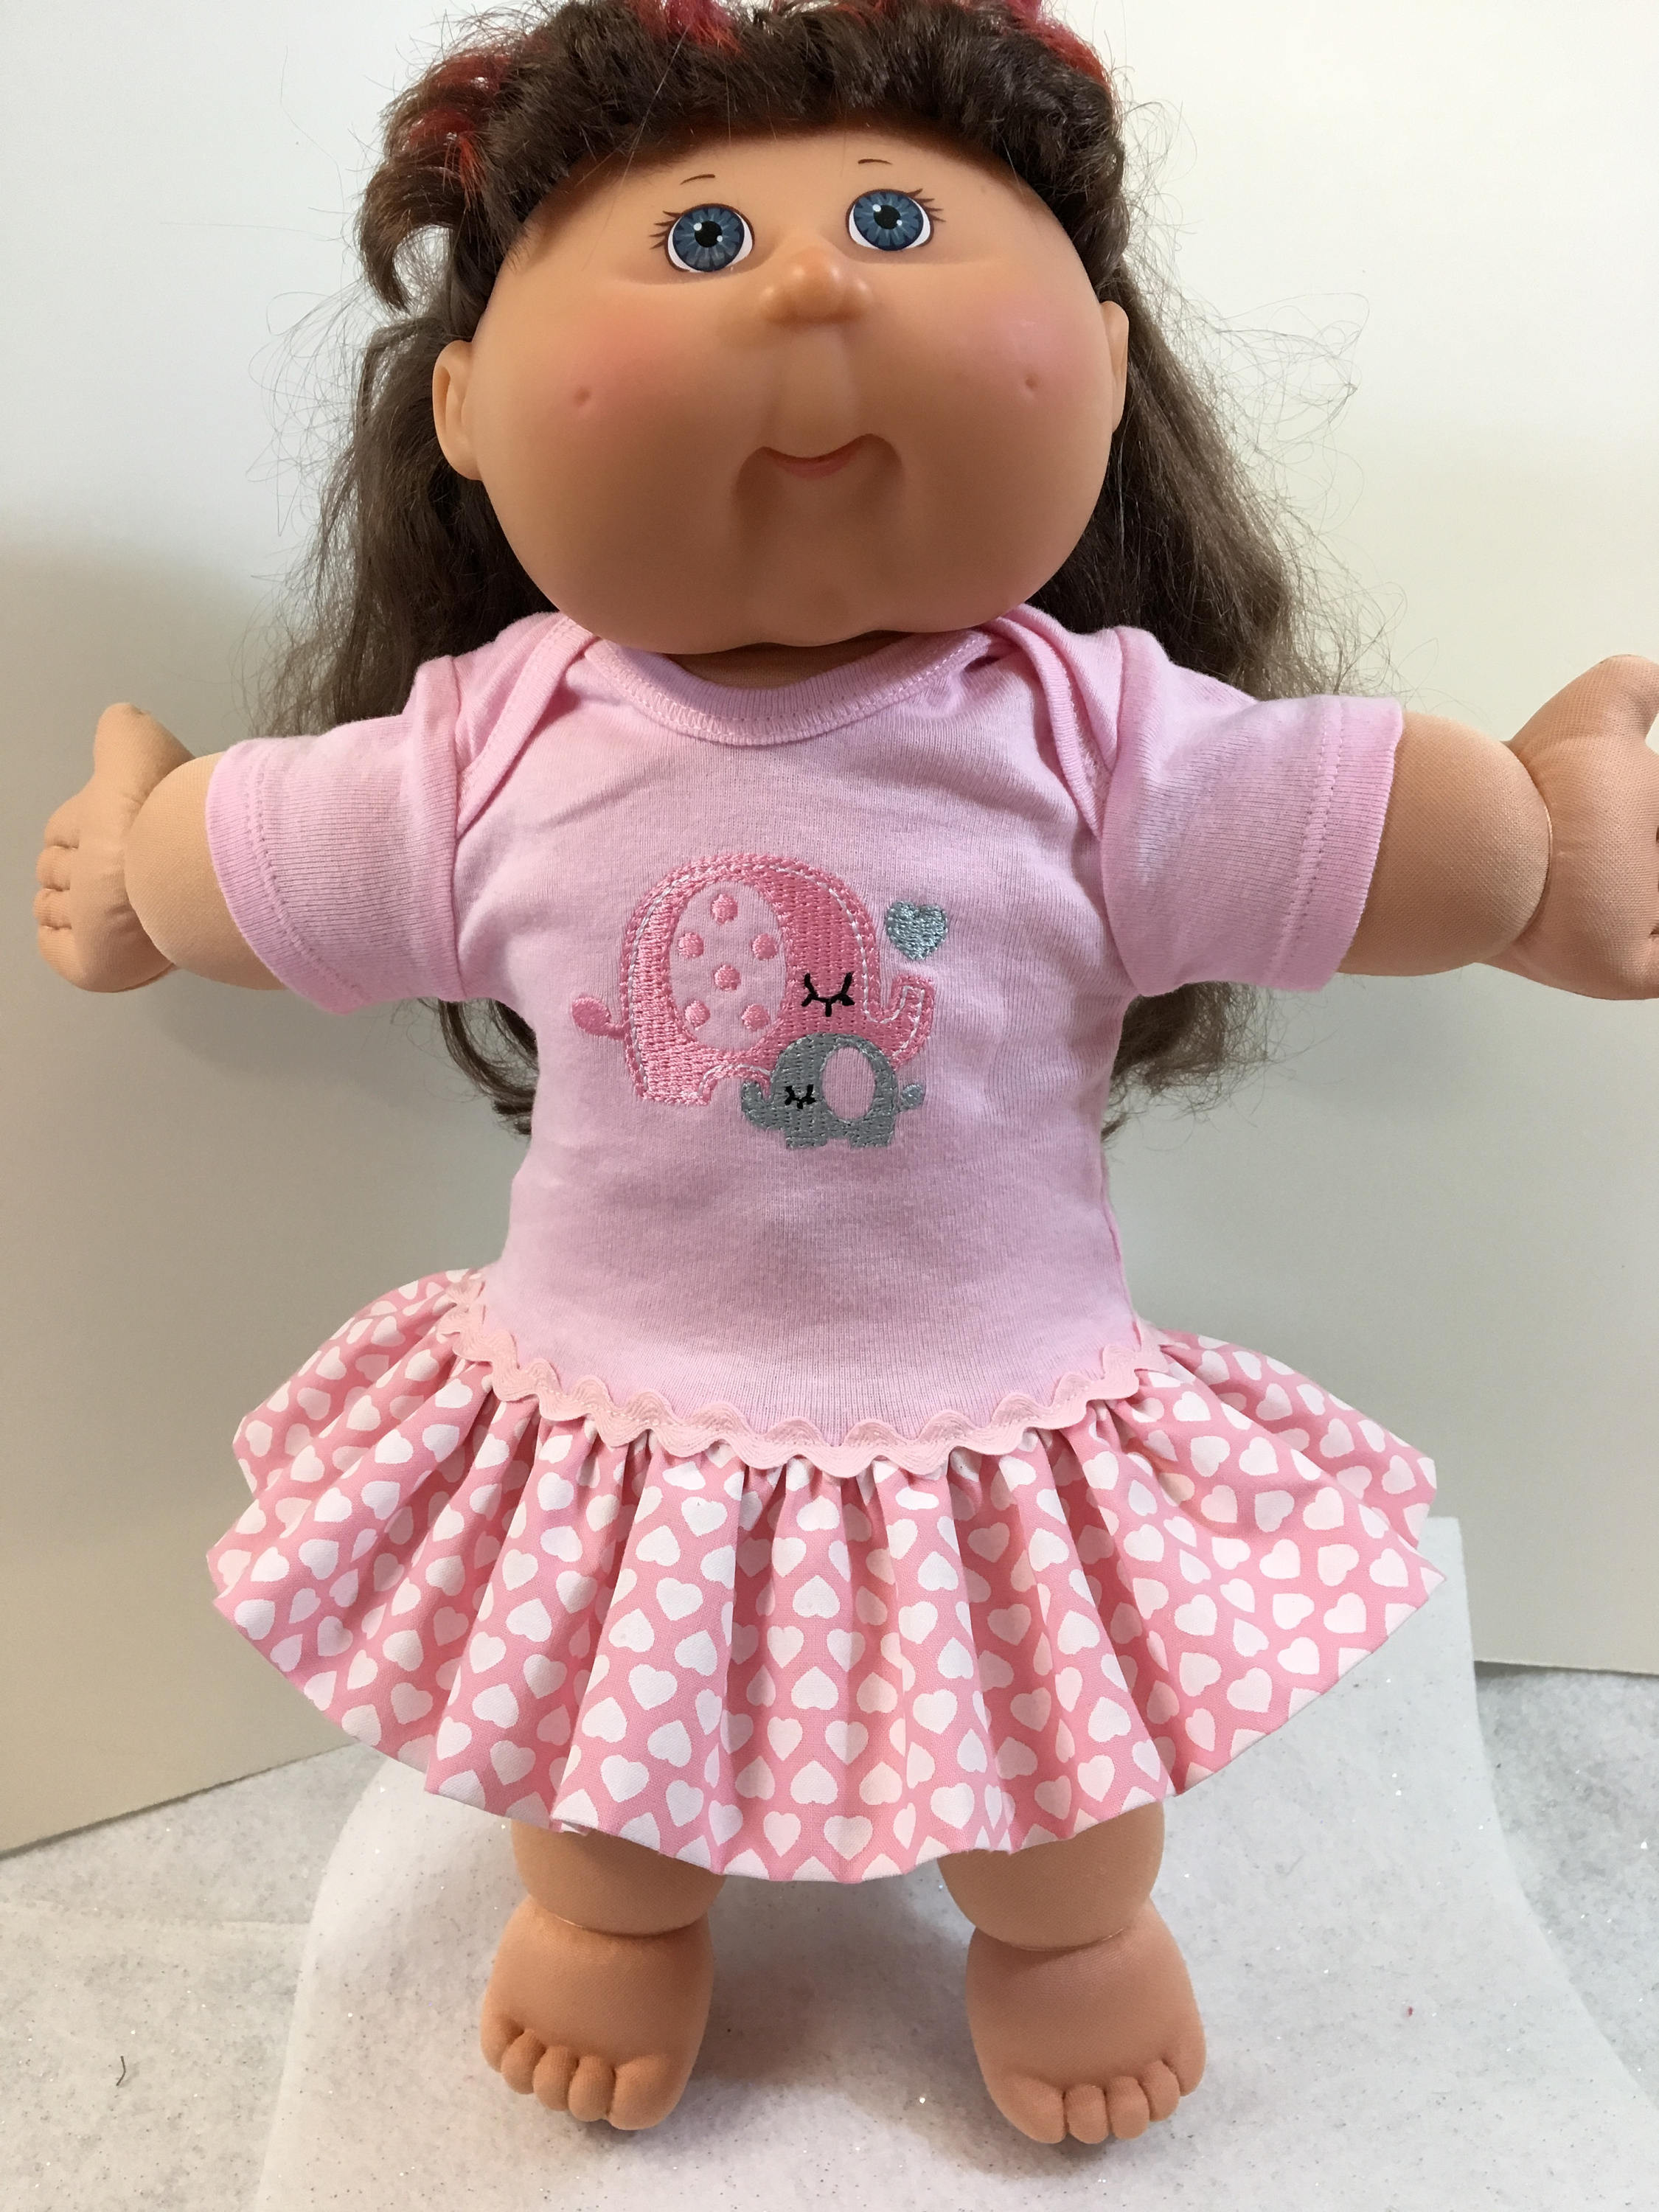 Fresh Cabbage Patch Kids 16 Doll Clothes Cute Mommy and Cabbage Patch Kids for Sale Of Marvelous 47 Pics Cabbage Patch Kids for Sale